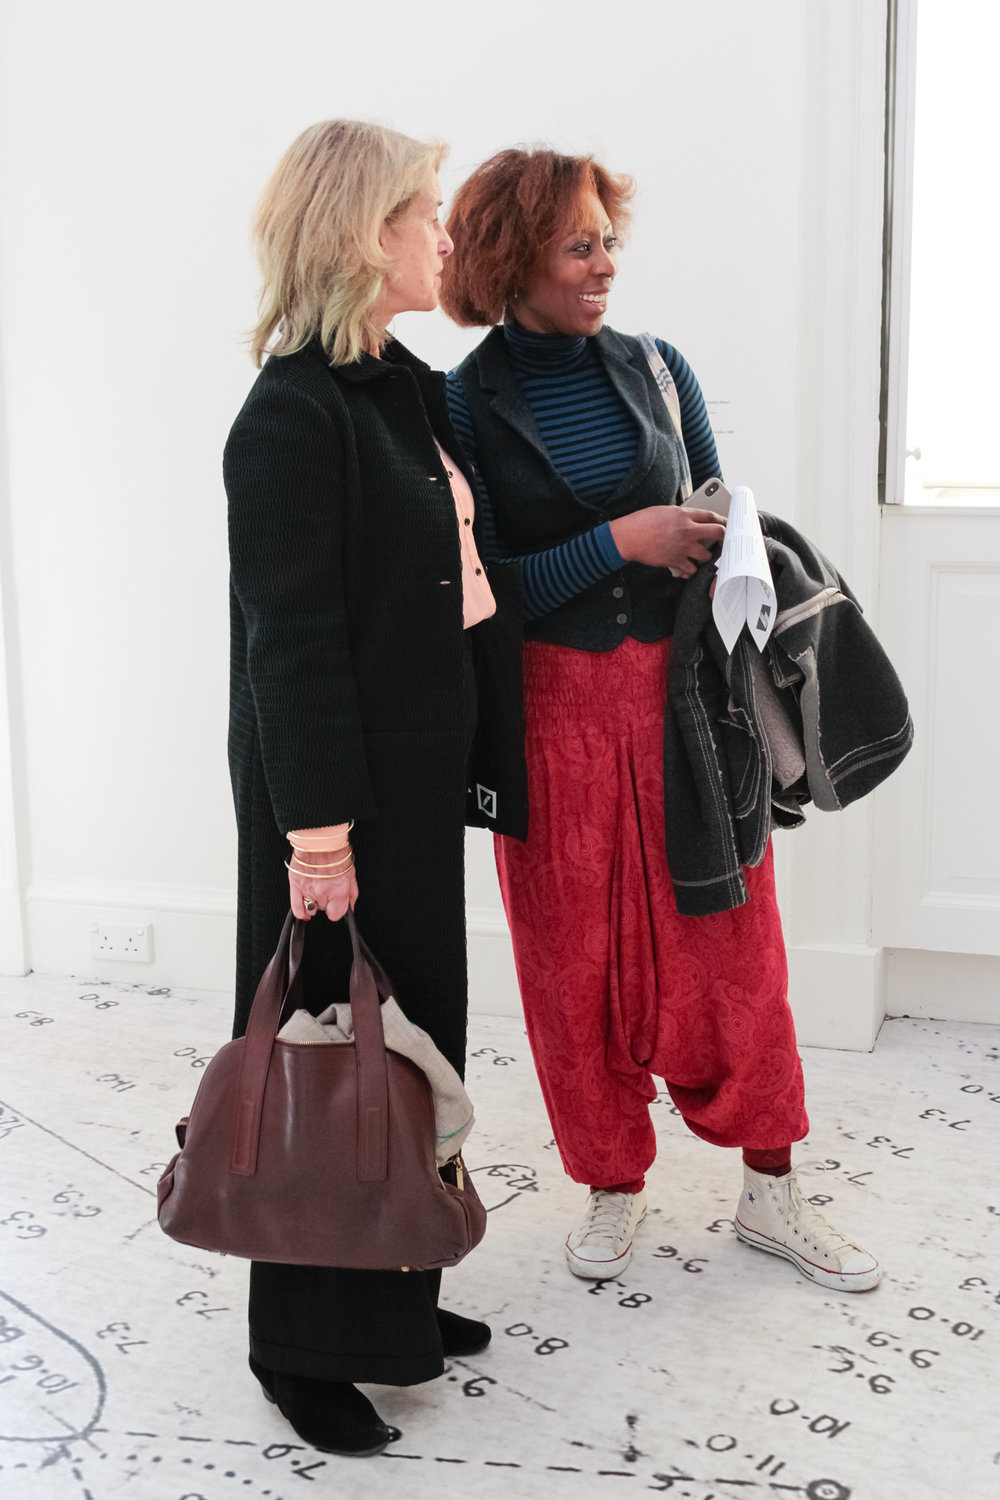 Penny Johnson & Ifeoma Dike  The Association of Women in the Arts, Galerie Thaddaeus Ropac, Somerset House, 2018